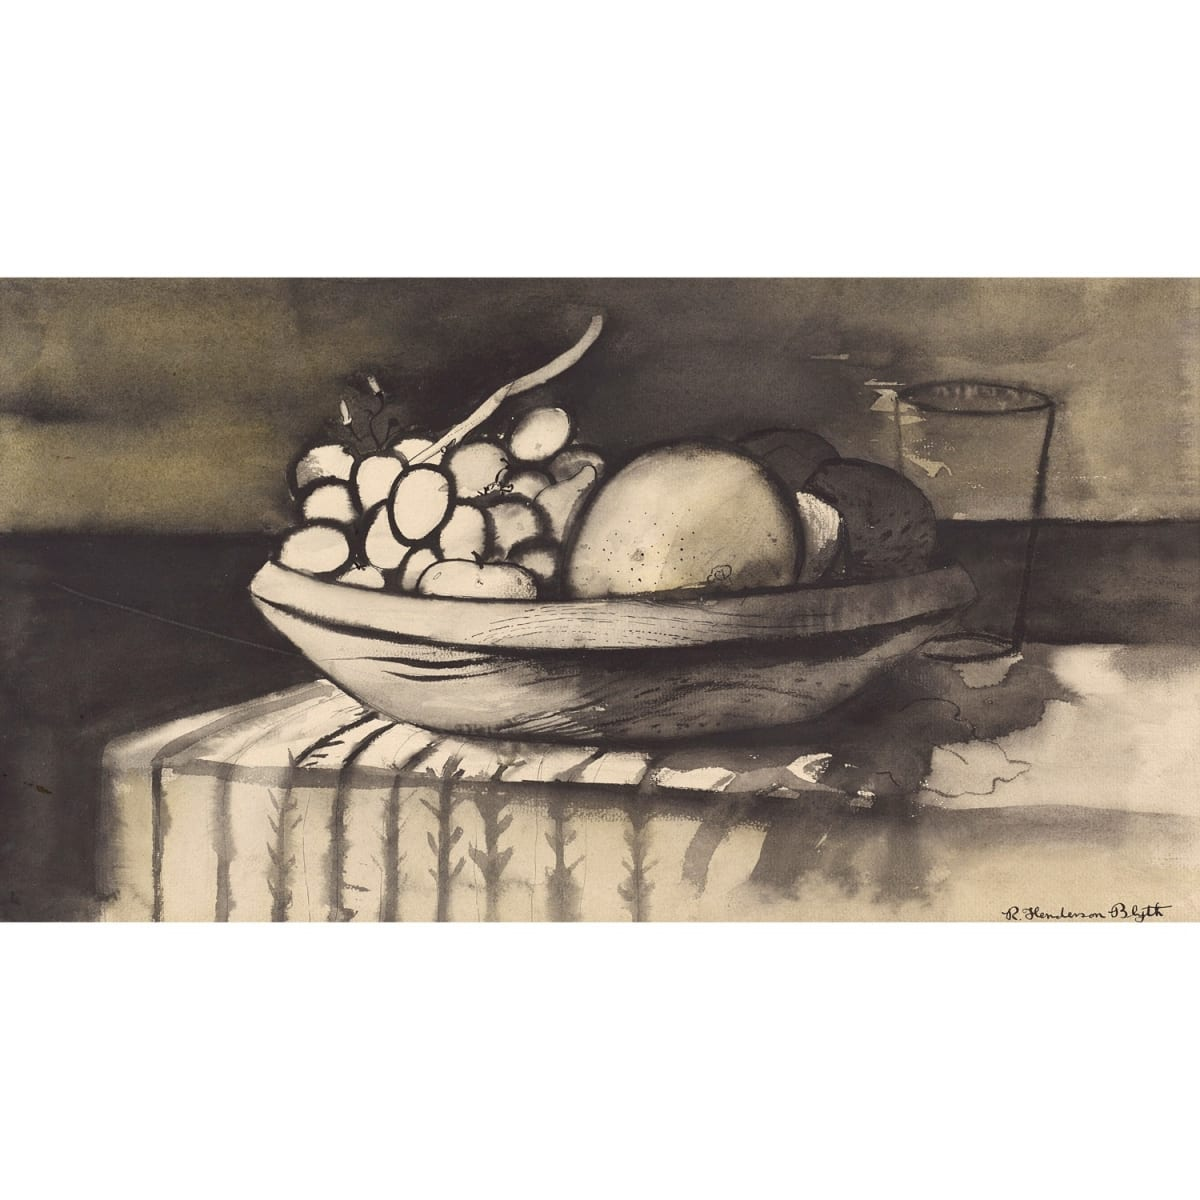 Robert Henderson Blyth Still Life, 1956 signed; titled on label verso; dated 1956 on plaque pen, ink and wash 10 1/4 x 18 3/4 inches